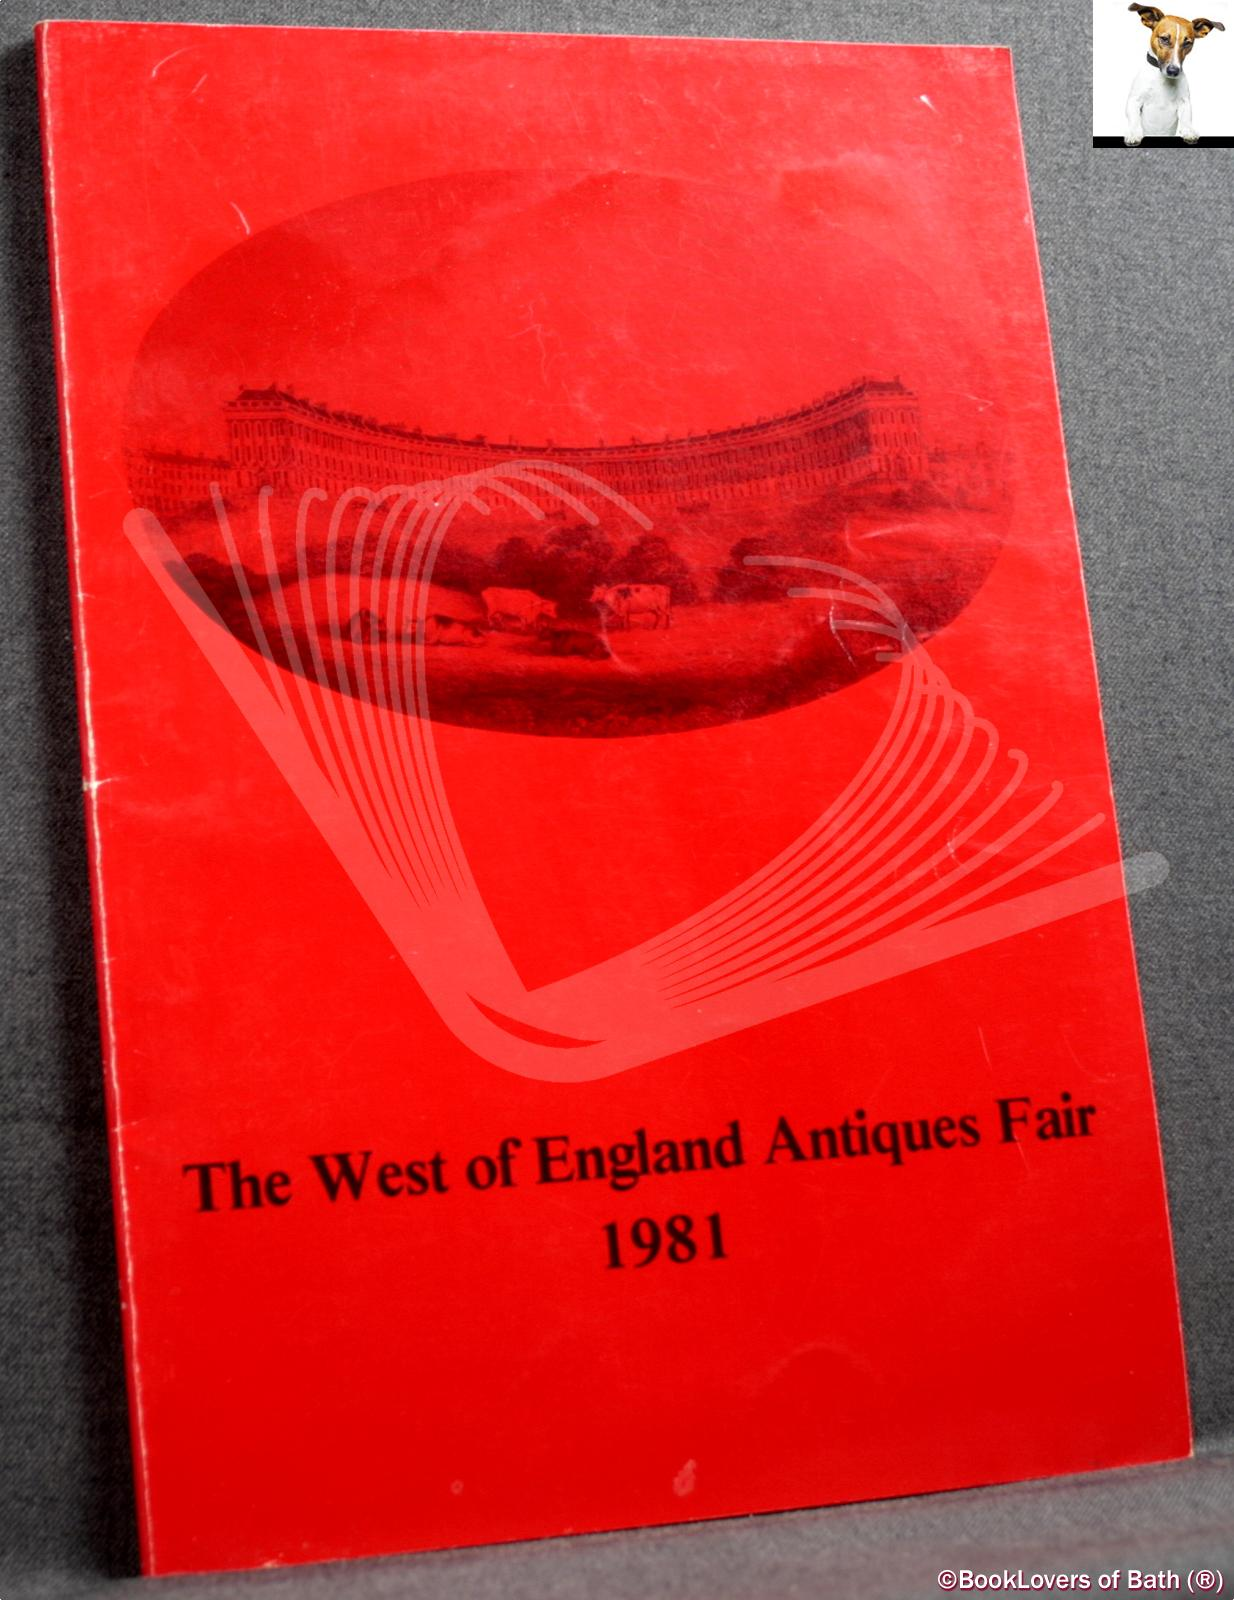 The West of England Antiques Fair 1981 - Anon.